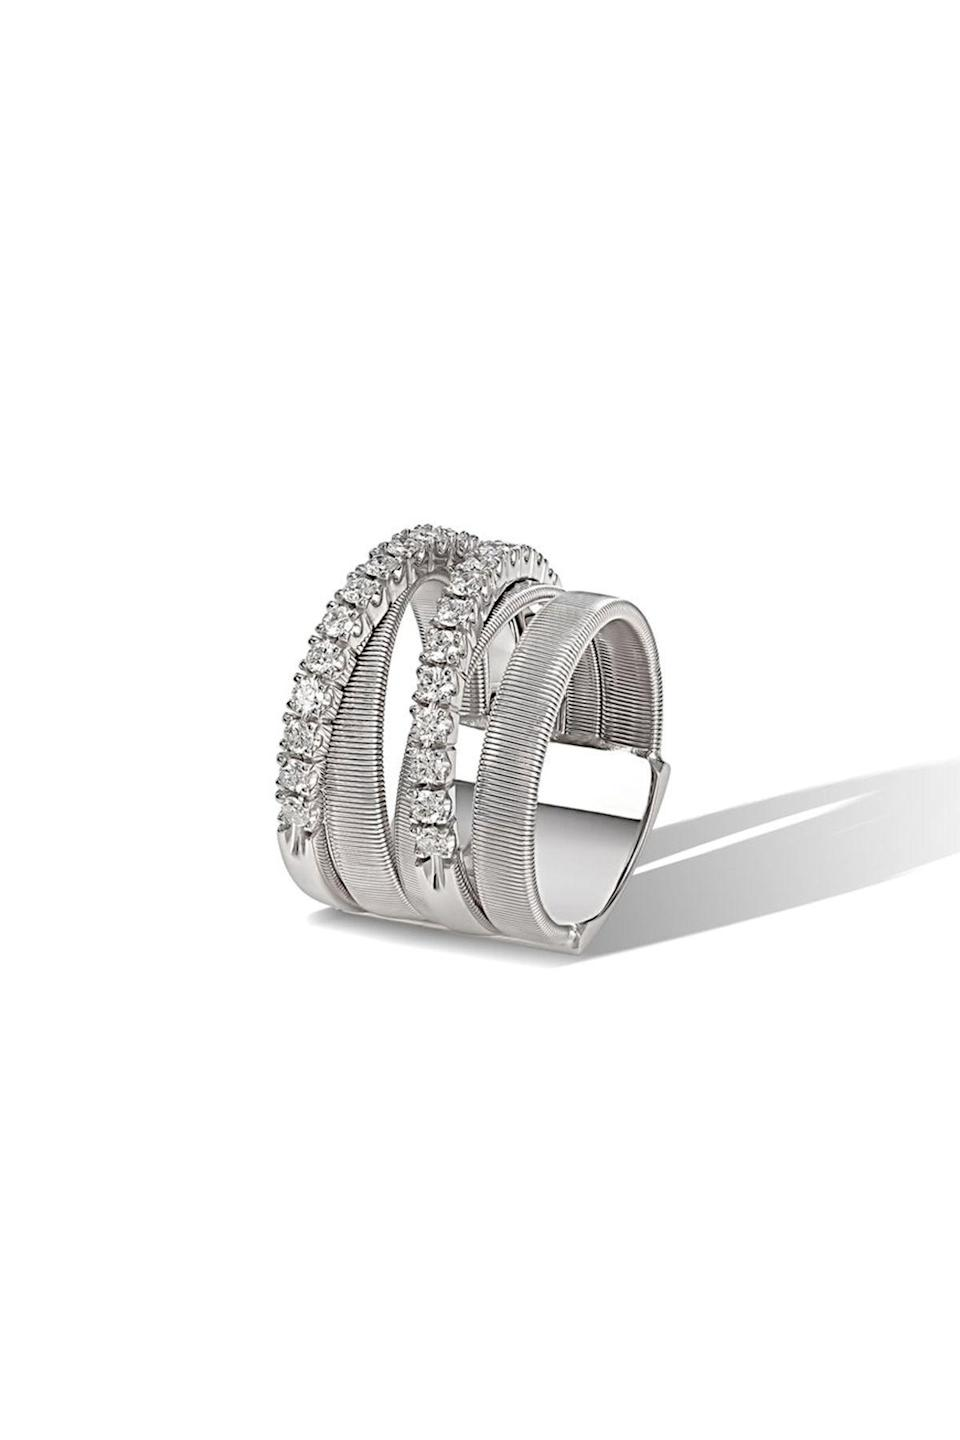 """<p><strong>Marco Bicego</strong></p><p>marcobicego.com</p><p><strong>$7160.00</strong></p><p><a href=""""https://us.marcobicego.com/products/masai-five-strand-white-gold-and-diamond-ring"""" rel=""""nofollow noopener"""" target=""""_blank"""" data-ylk=""""slk:Shop Now"""" class=""""link rapid-noclick-resp"""">Shop Now</a></p><p>A five strand ring that takes cues from the African Masai tribe's ornamentation, Marco Bicego's design wraps sinuously around the finger.</p>"""